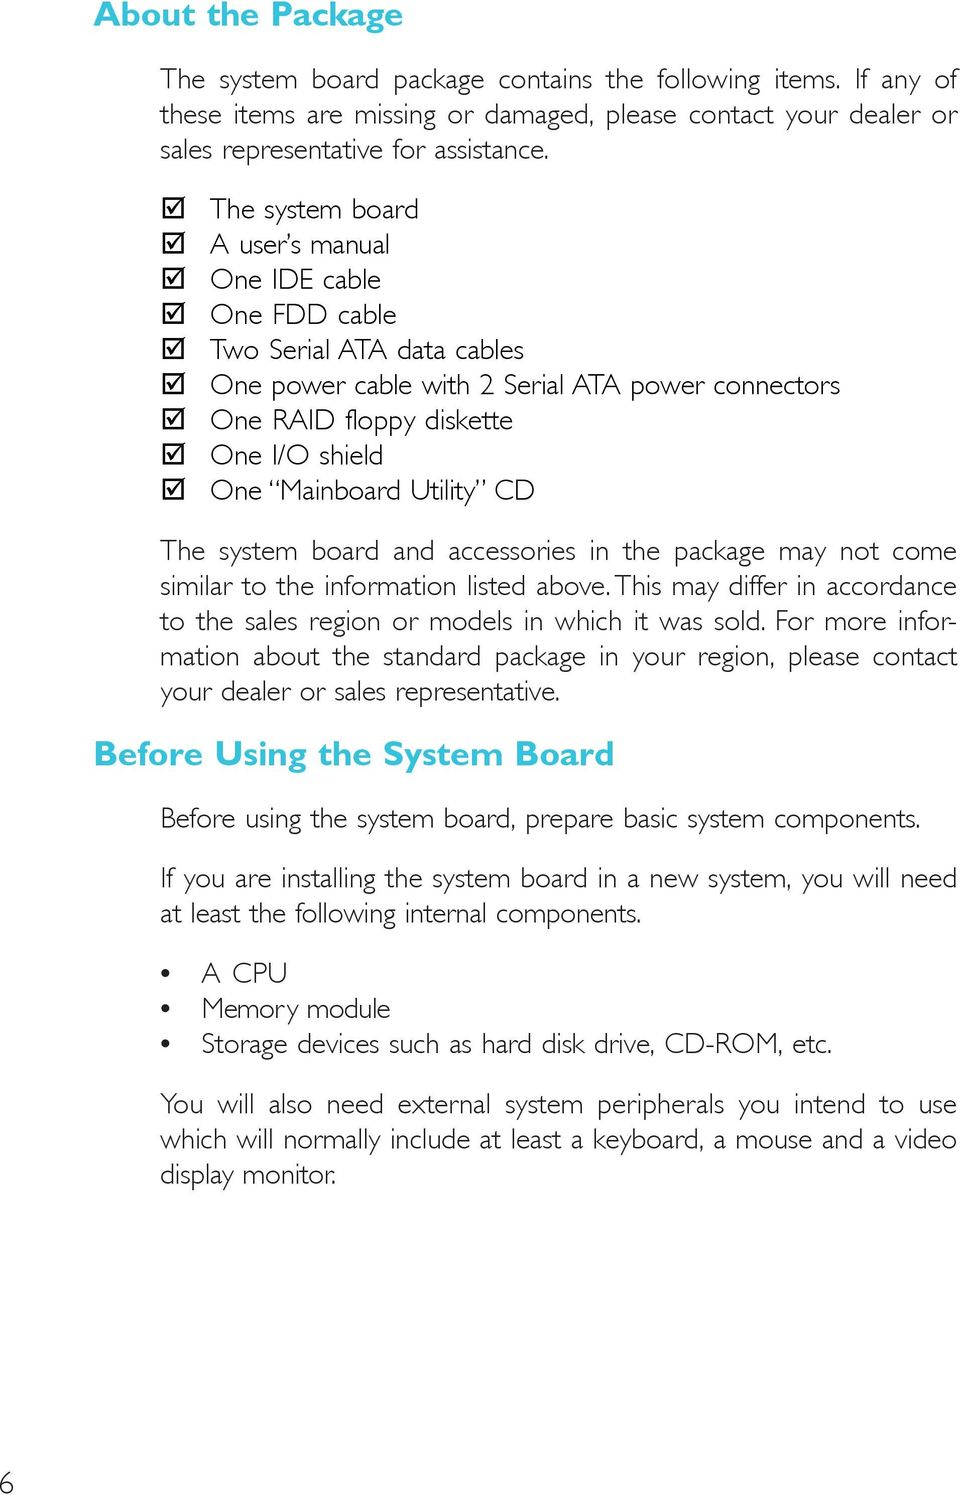 Utility CD The system board and accessories in the package may not come similar to the information listed above. This may differ in accordance to the sales region or models in which it was sold.